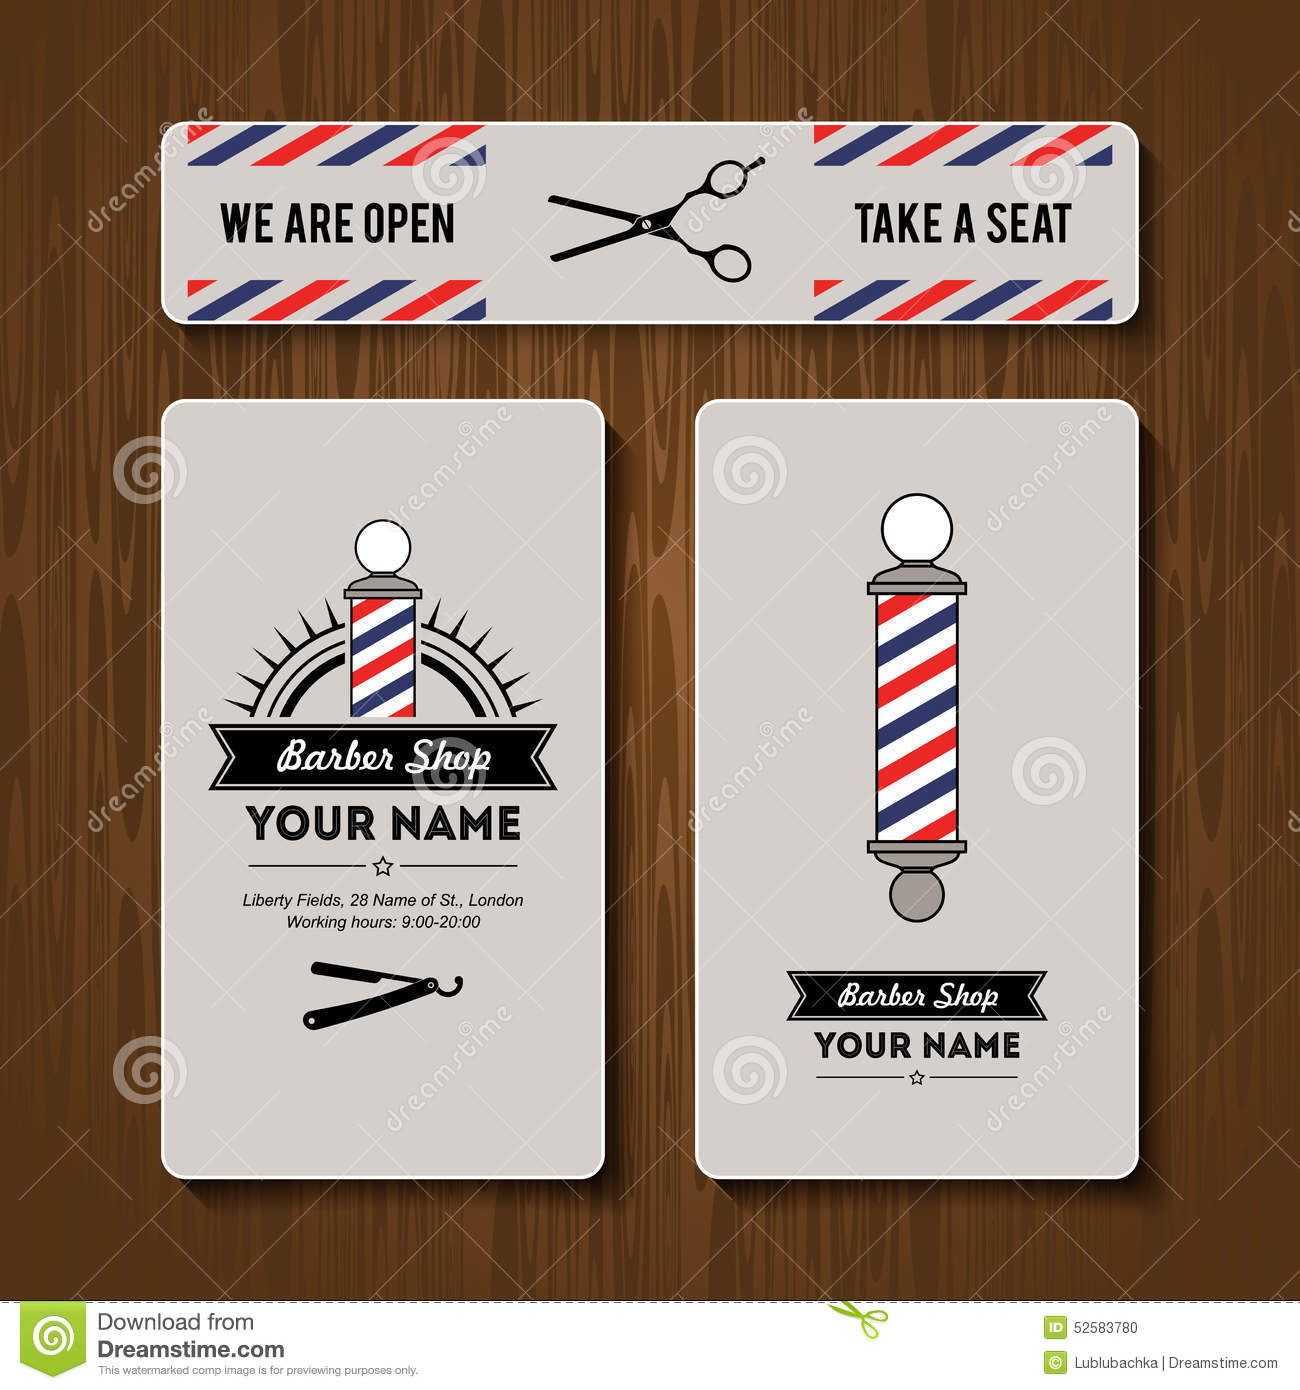 Hair salon barber shop business card design template set stock download hair salon barber shop business card design template set stock illustration illustration of gents fbccfo